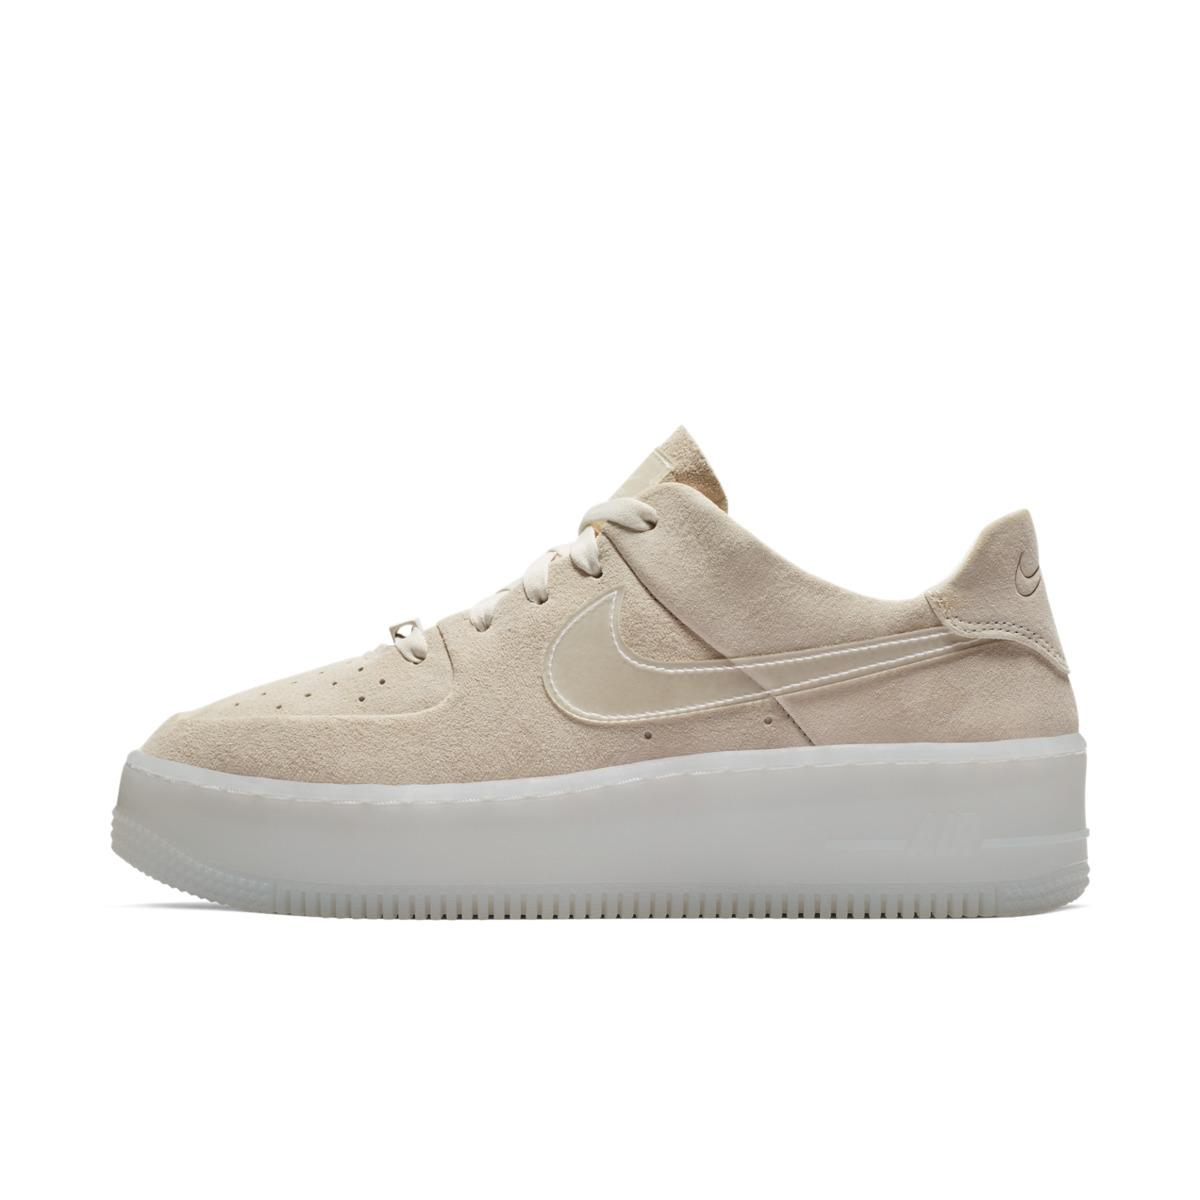 quality design b4baa d67f5 Nike - Multicolor Air Force 1 Sage Low Lx Casual Trainers - Lyst. View  fullscreen